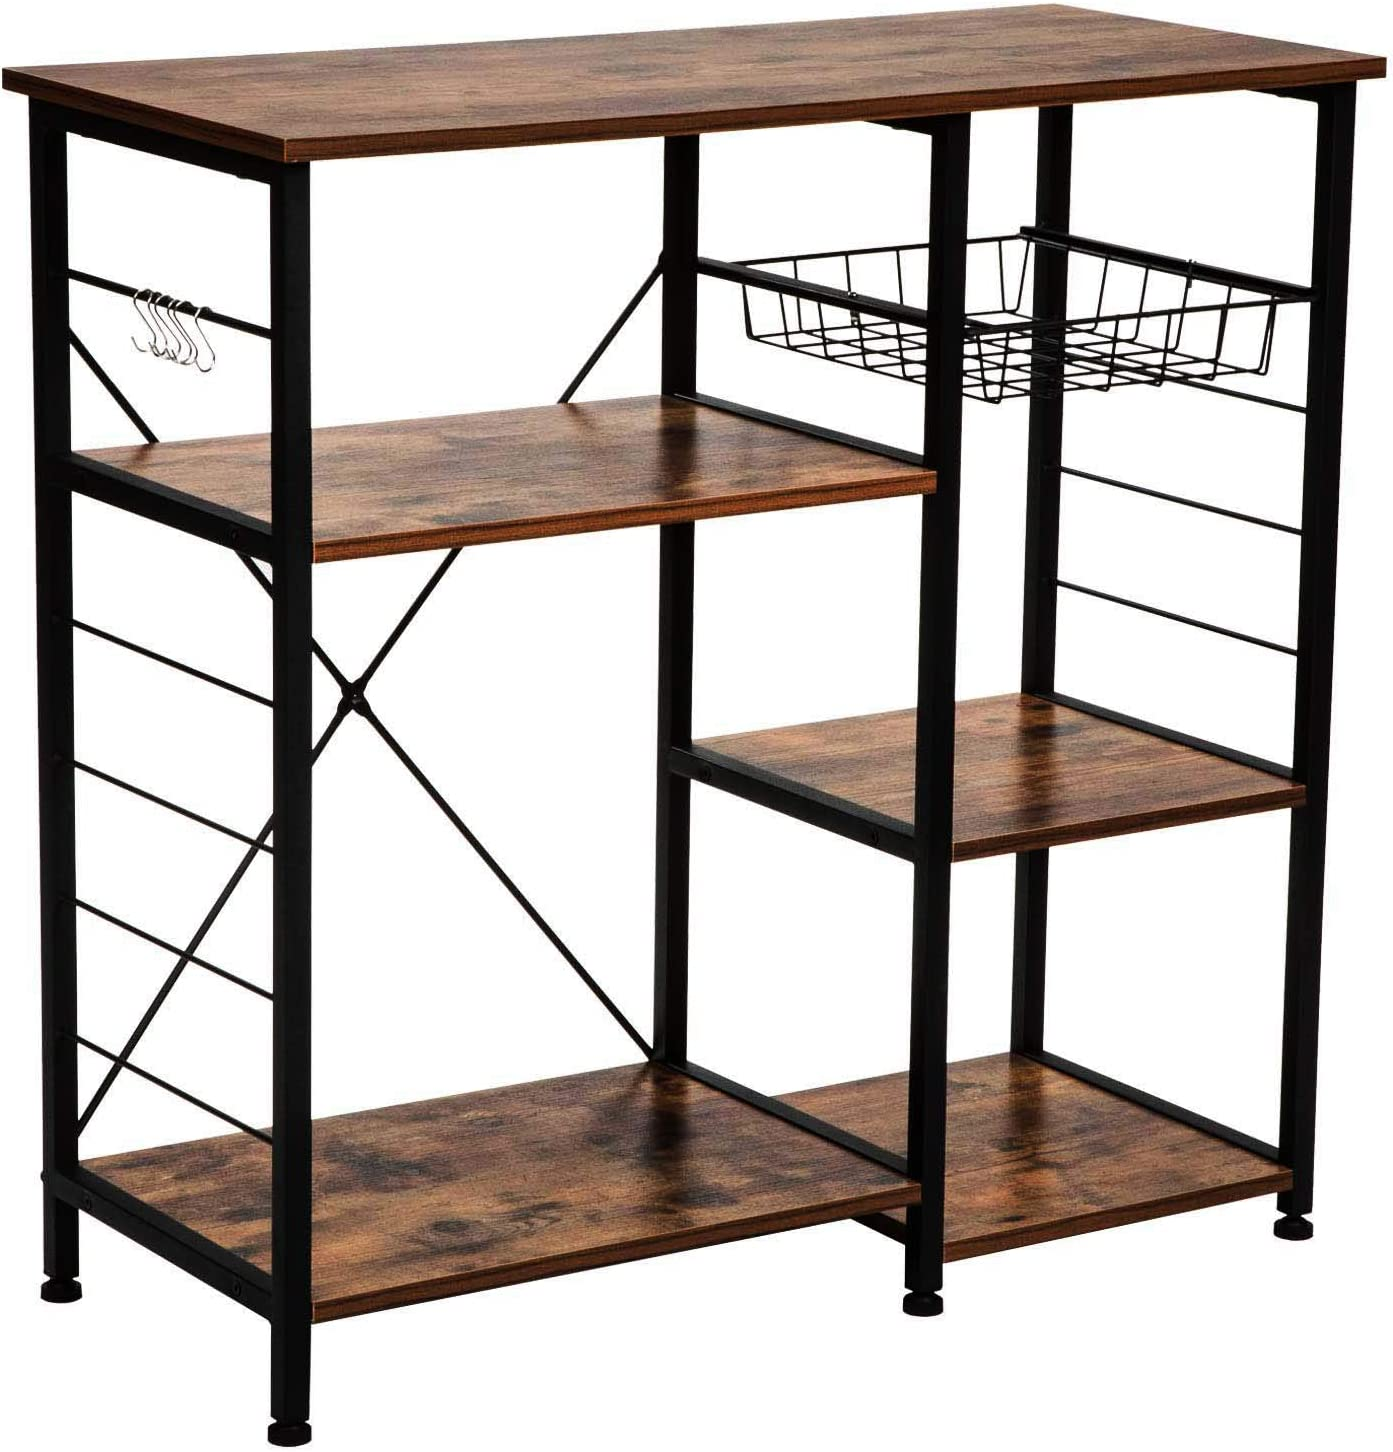 IRONCK Industrial Kitchen Baker s Rack, Kitchen Island Utility Storage Shelf, Microwave Stand with 6 Hooks, Metal Frame, Simple Assembly, Vintage Brown